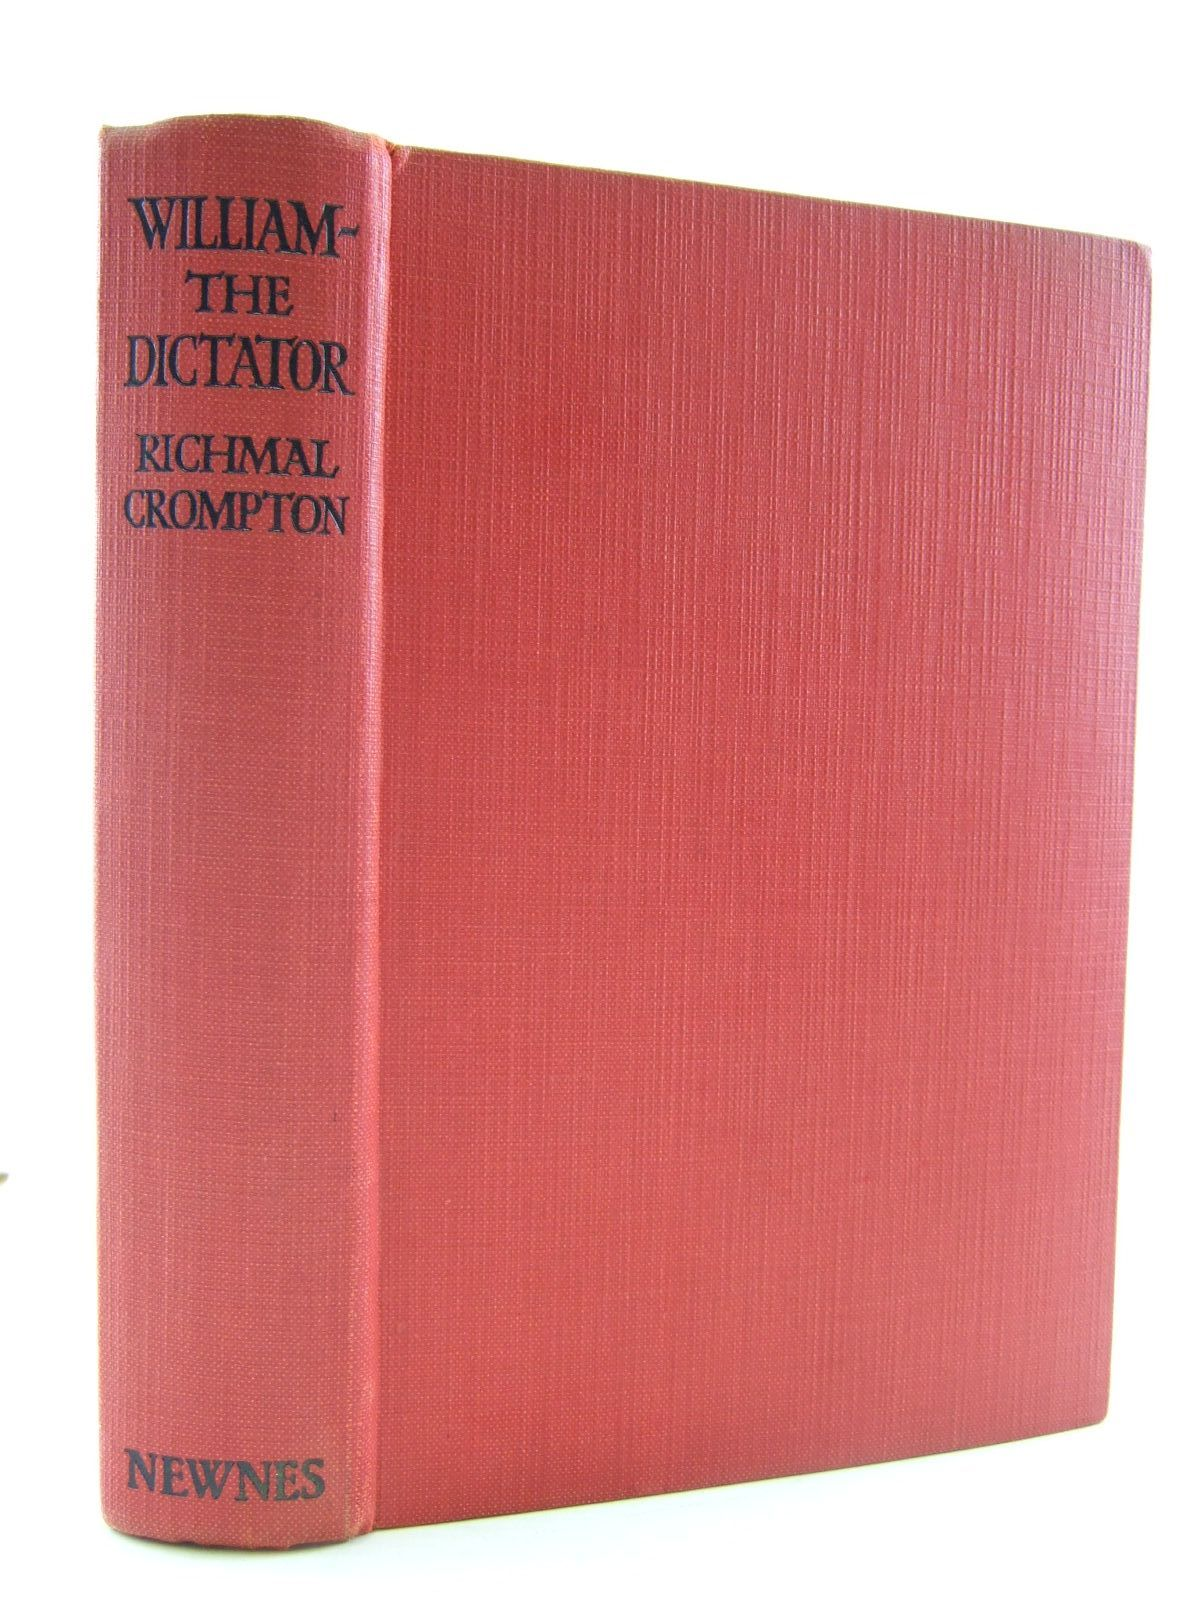 Photo of WILLIAM-THE DICTATOR written by Crompton, Richmal illustrated by Henry, Thomas published by George Newnes Ltd. (STOCK CODE: 2109199)  for sale by Stella & Rose's Books